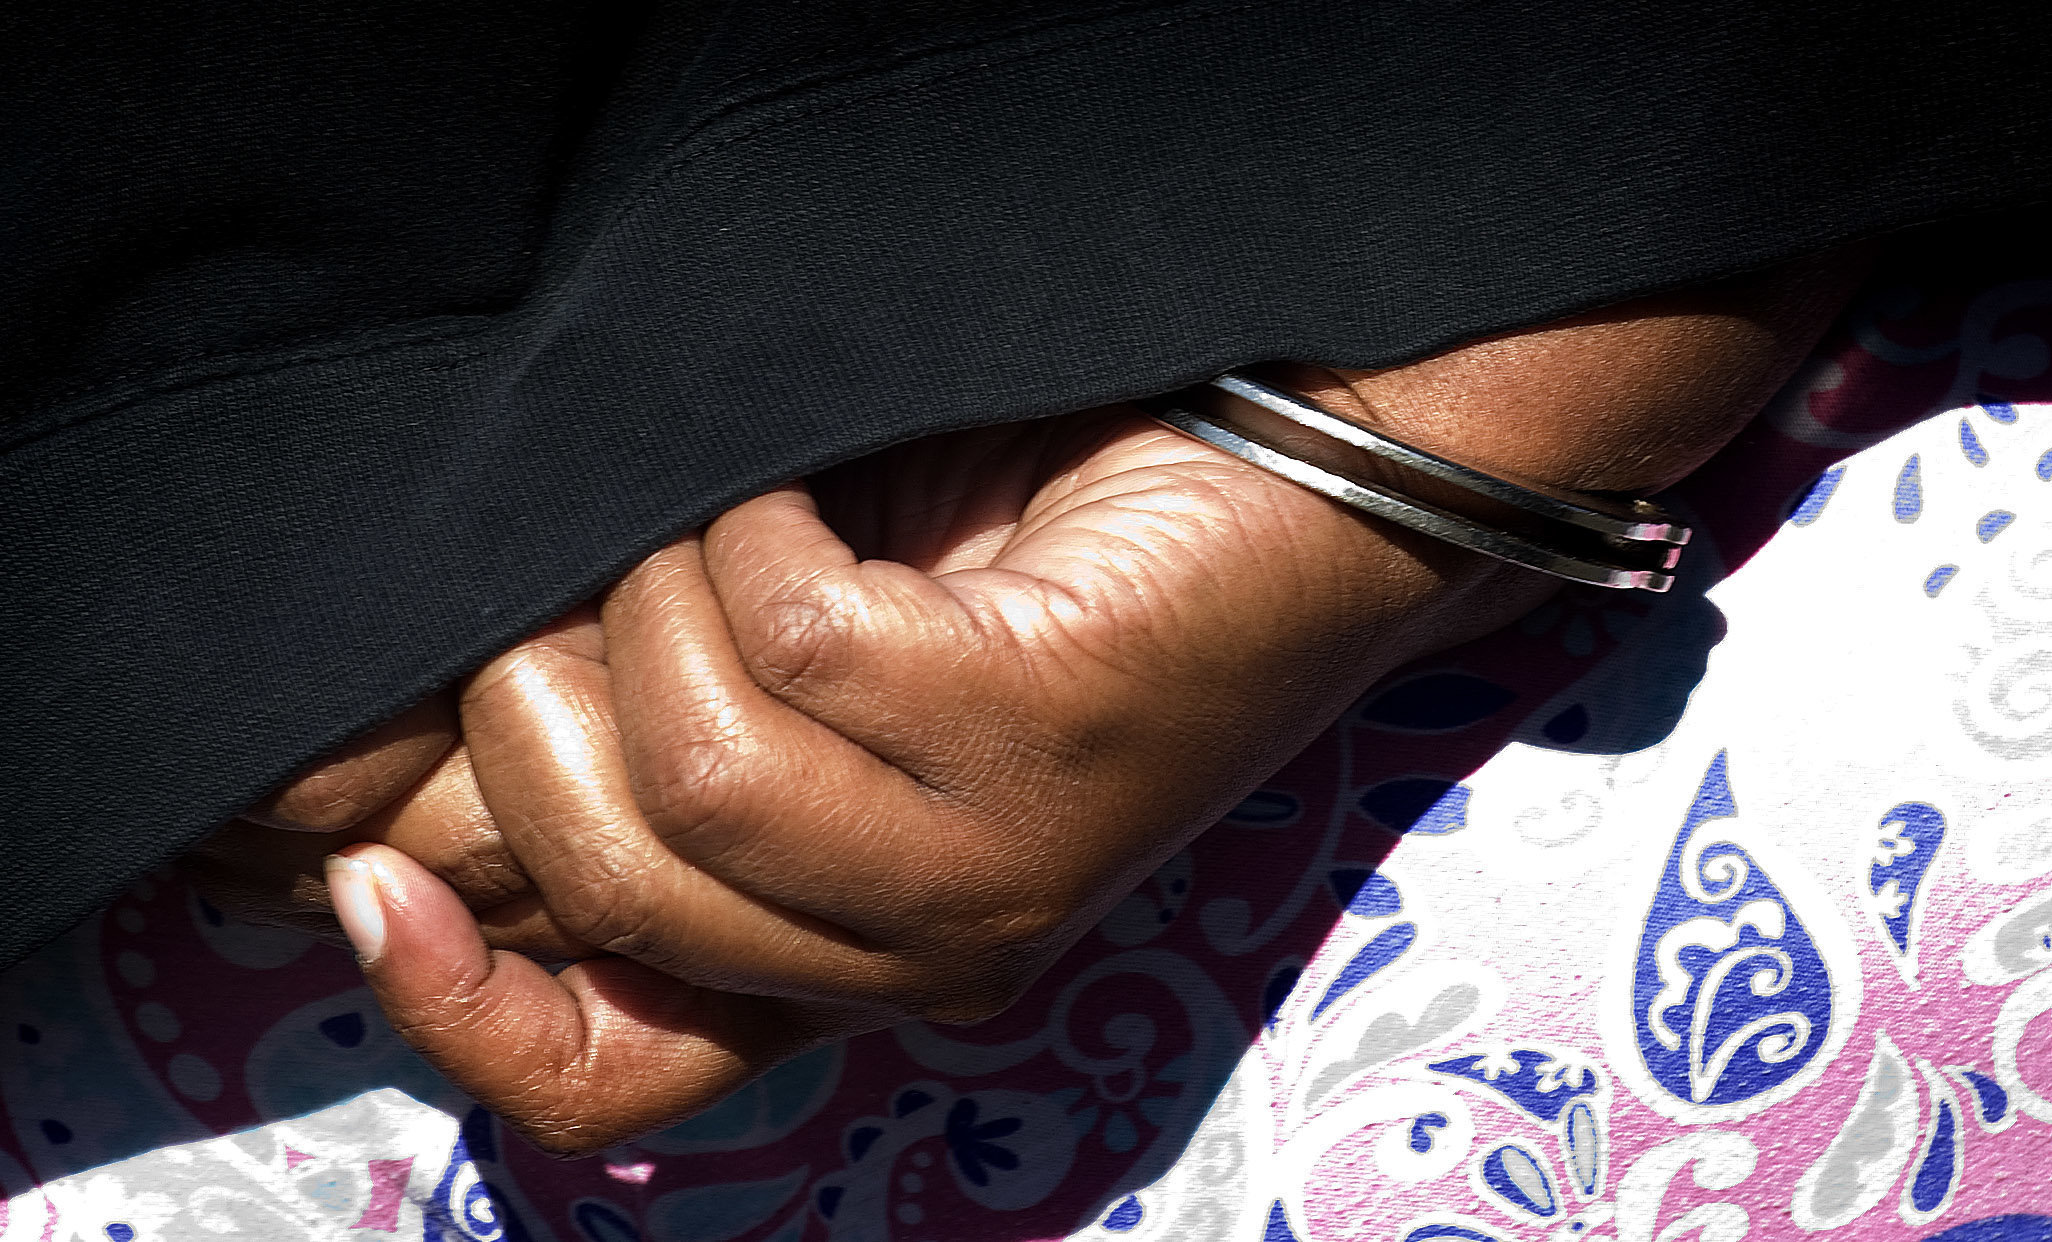 Peoples in handcuffs on April 18, 2013.